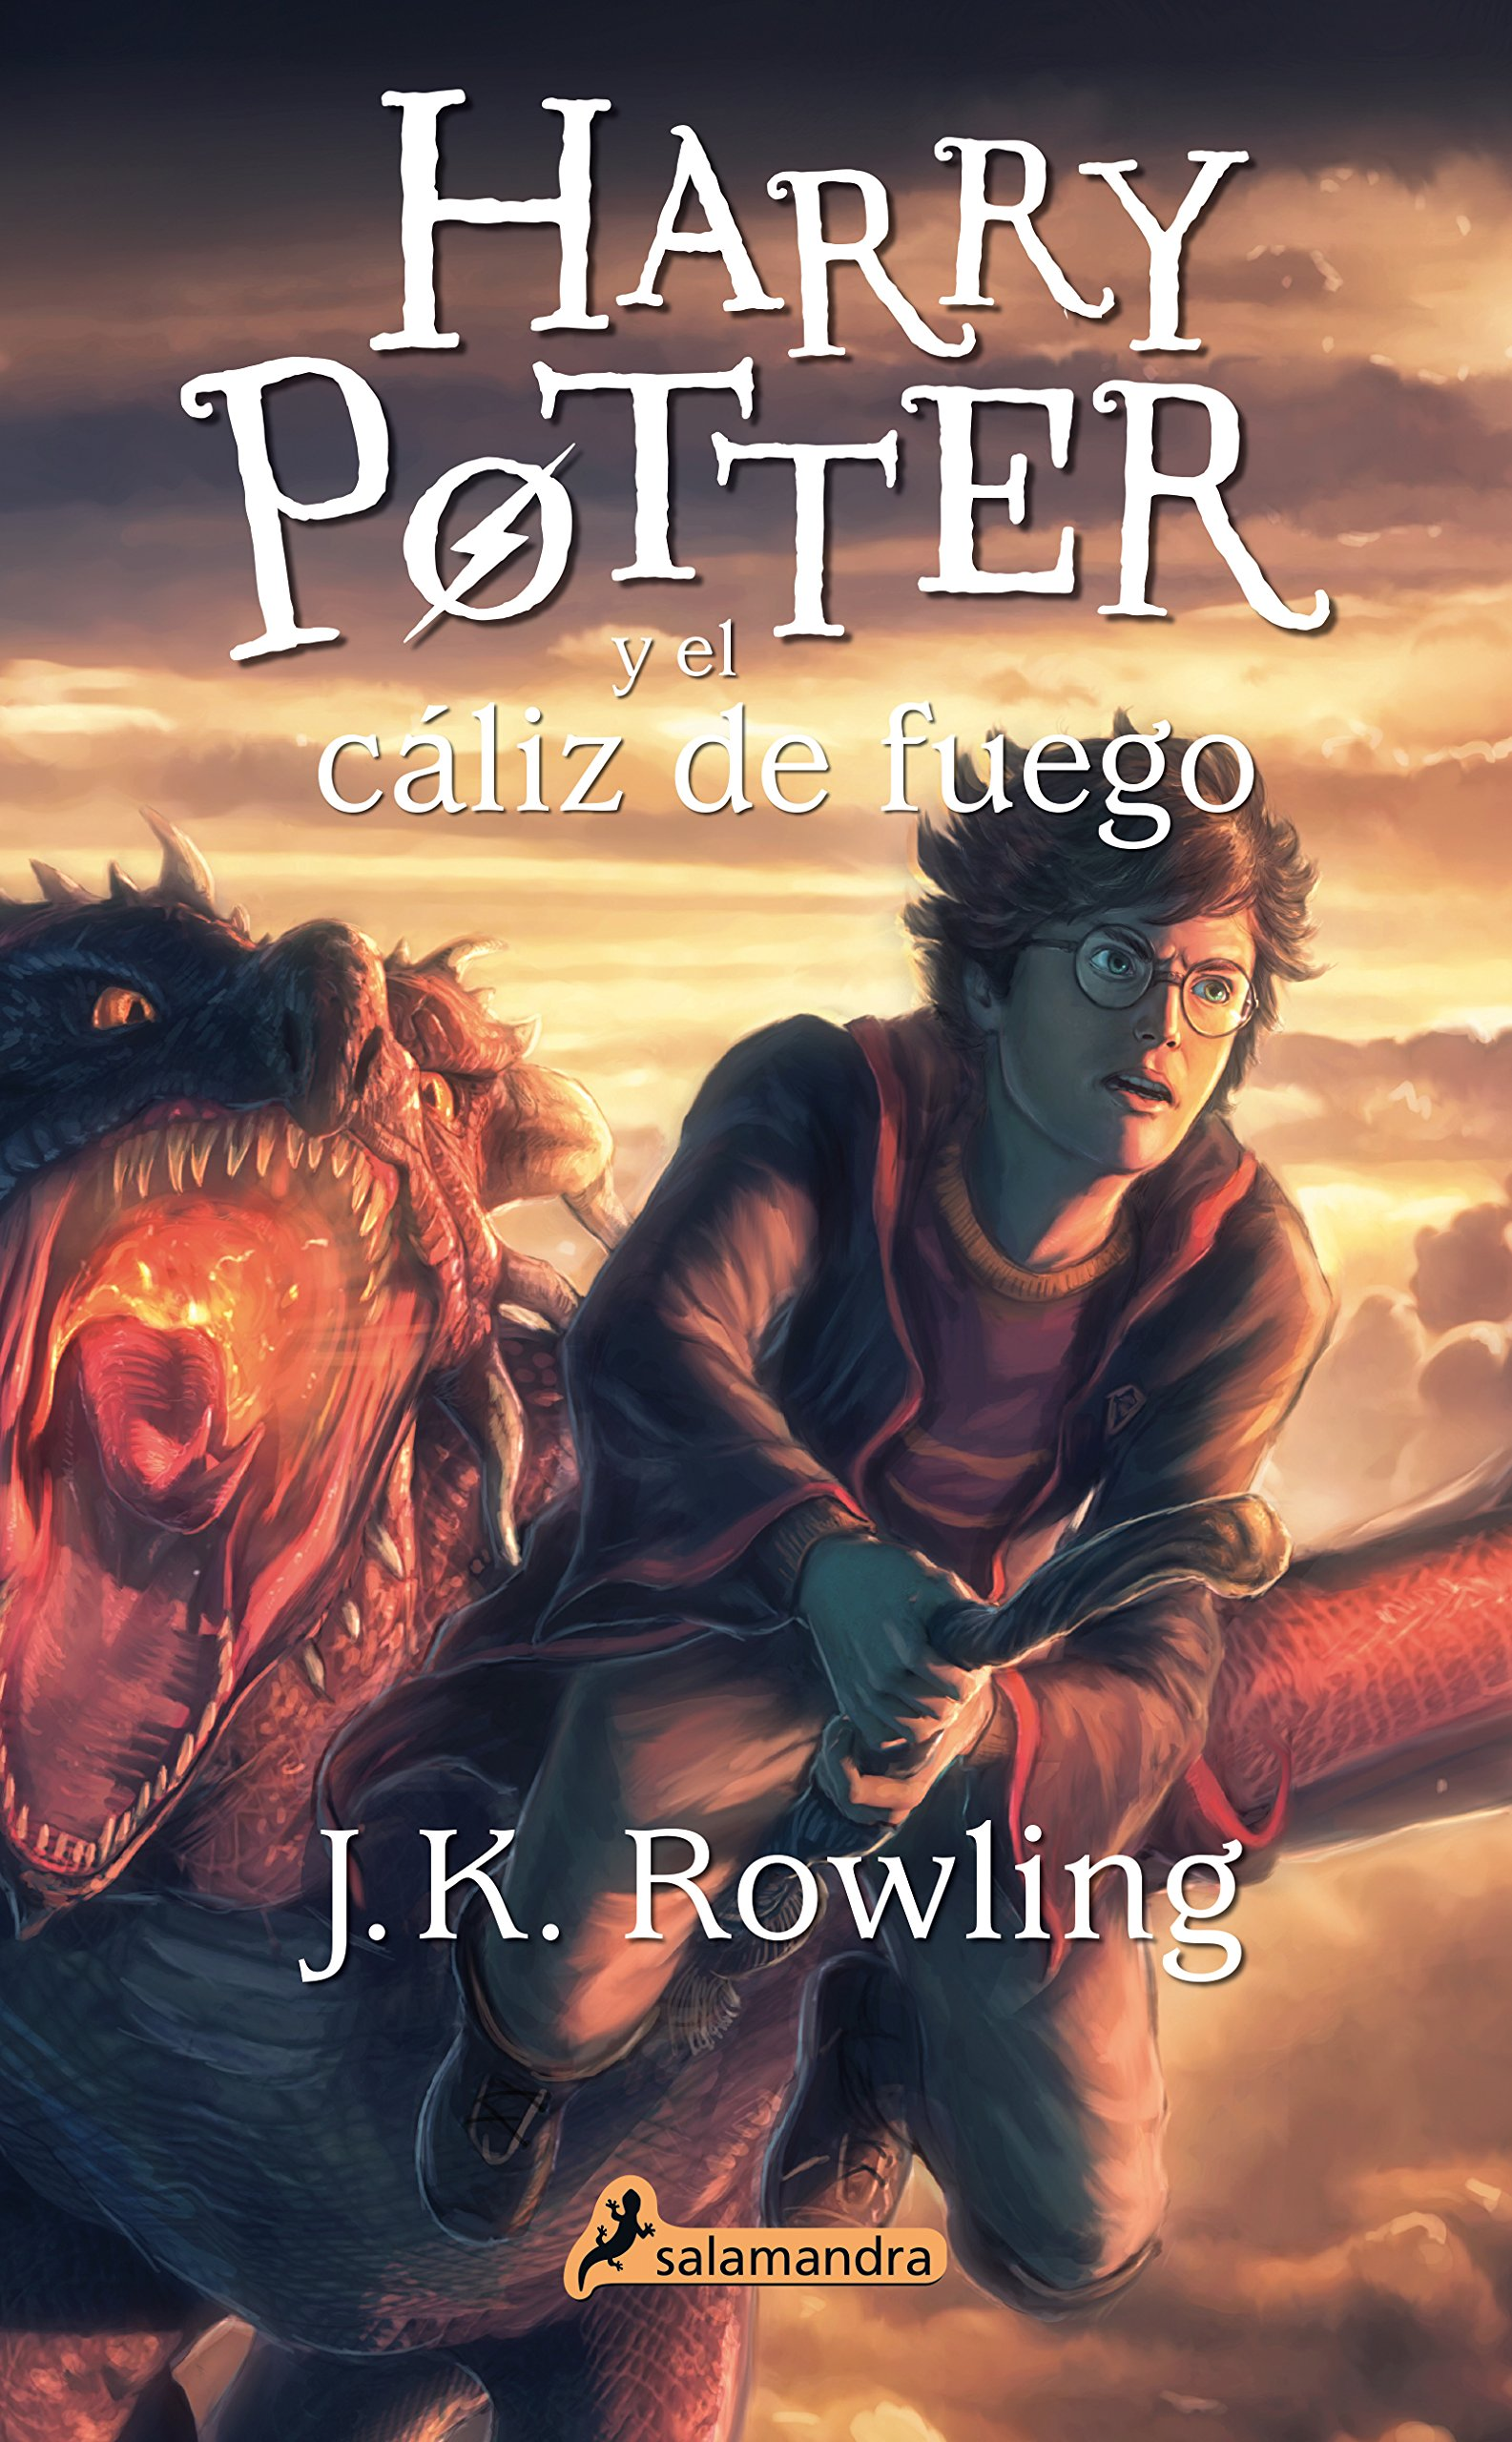 Amazon.com: Harry Potter y el caliz de fuego (Harry 04) (Spanish ...